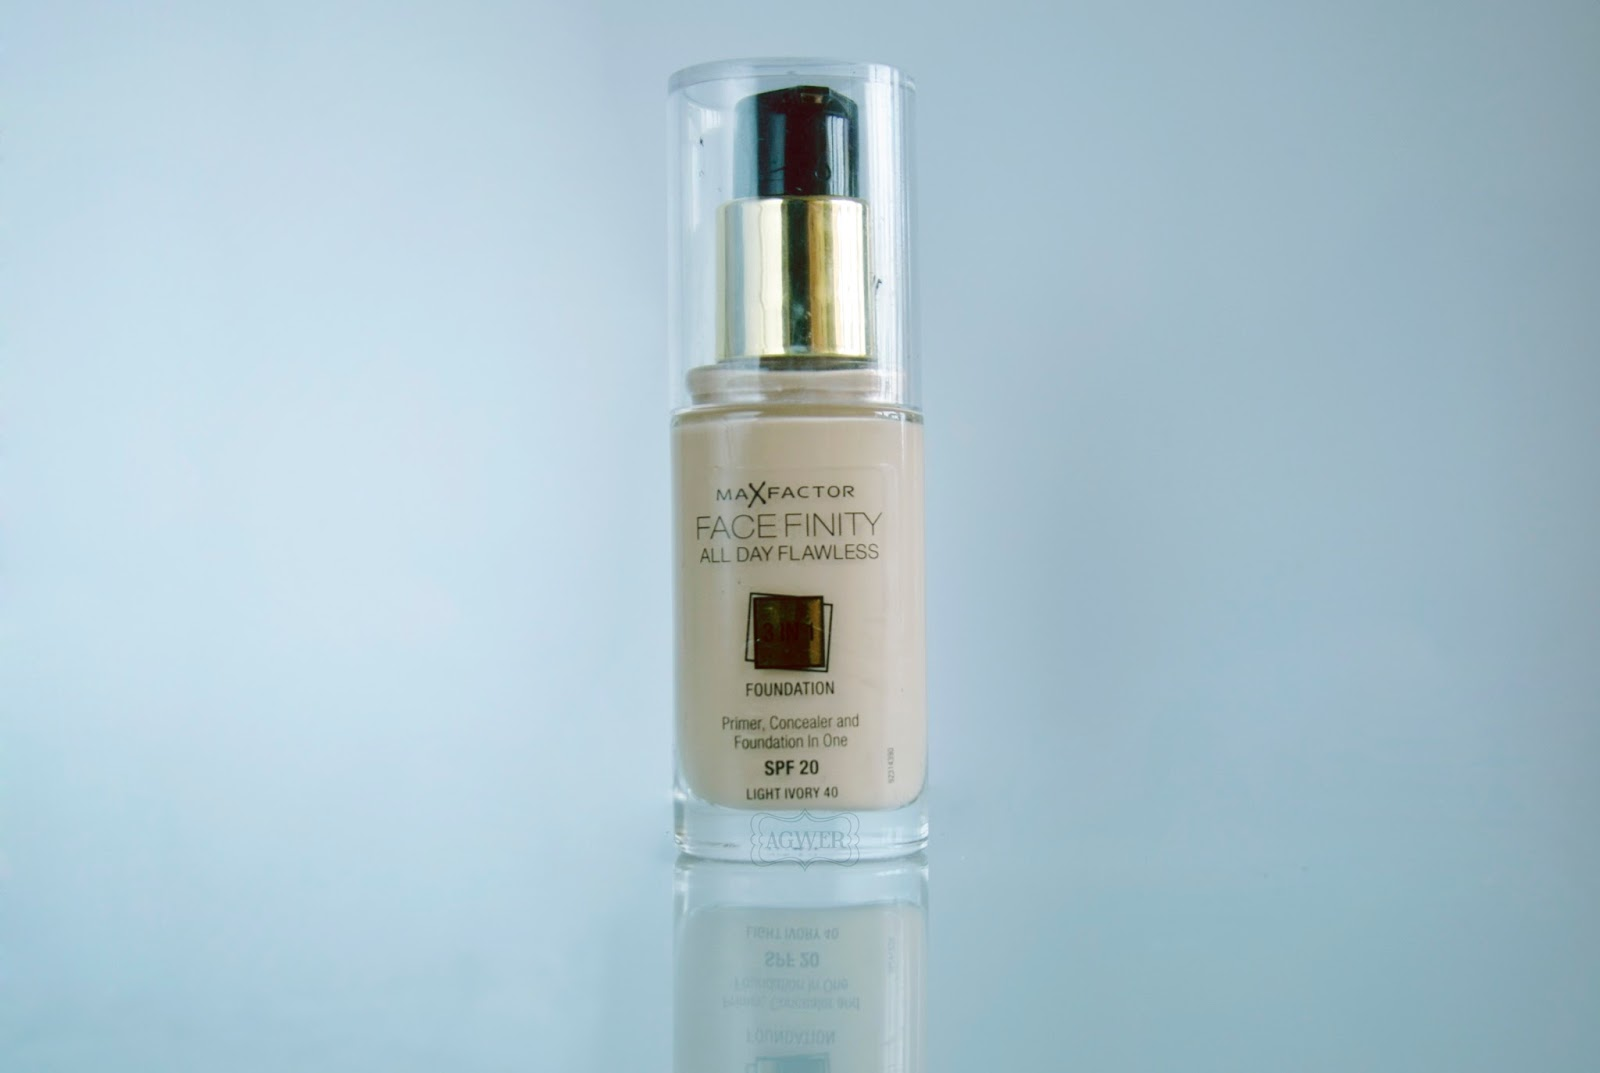 # Maxfactor Facefanity ALL DAY FLAWLESS 3 in1